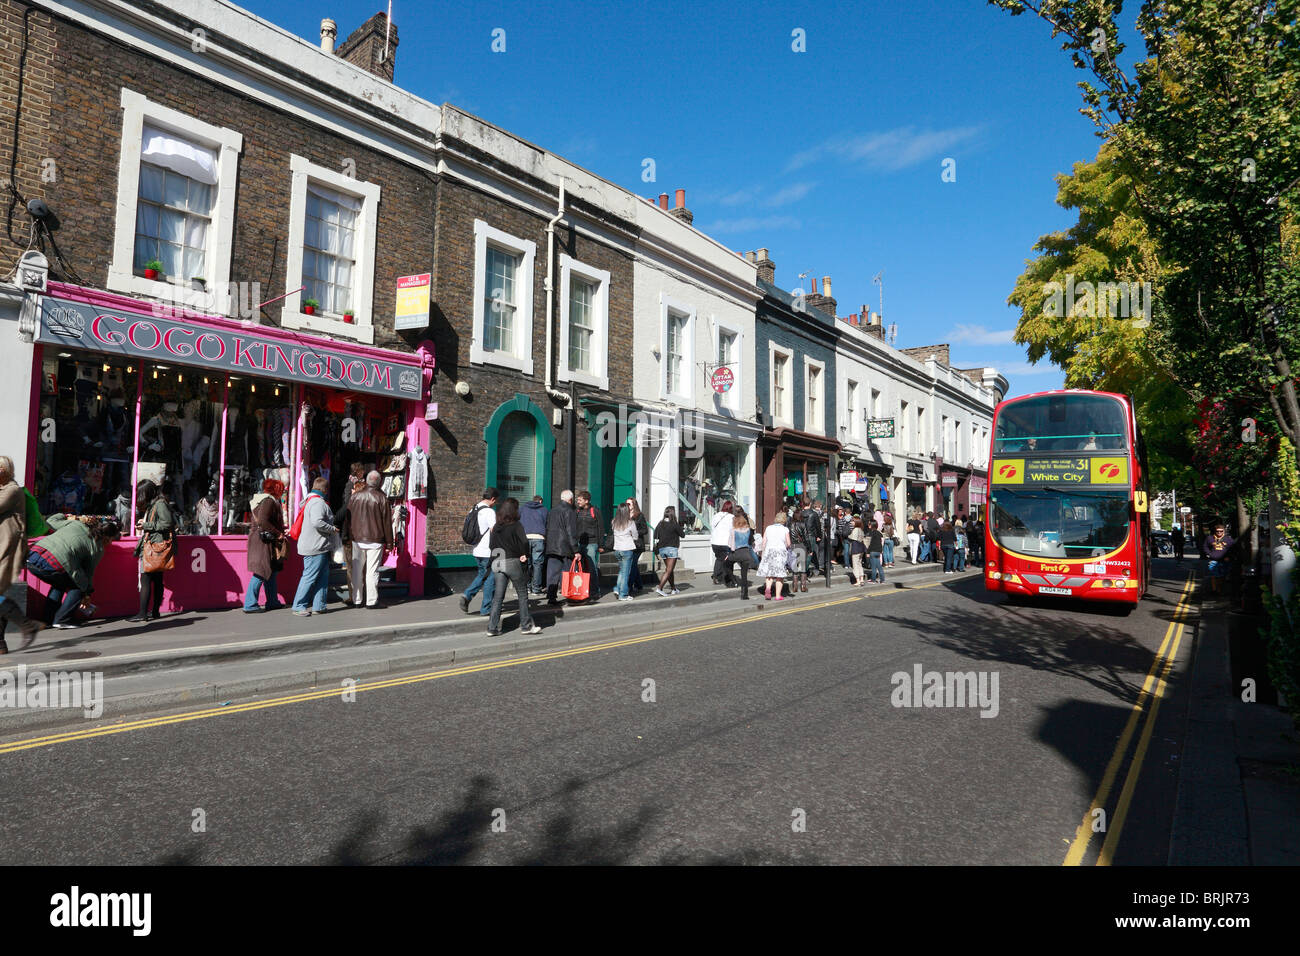 Shopping in Notting Hill Gate London - Stock Image